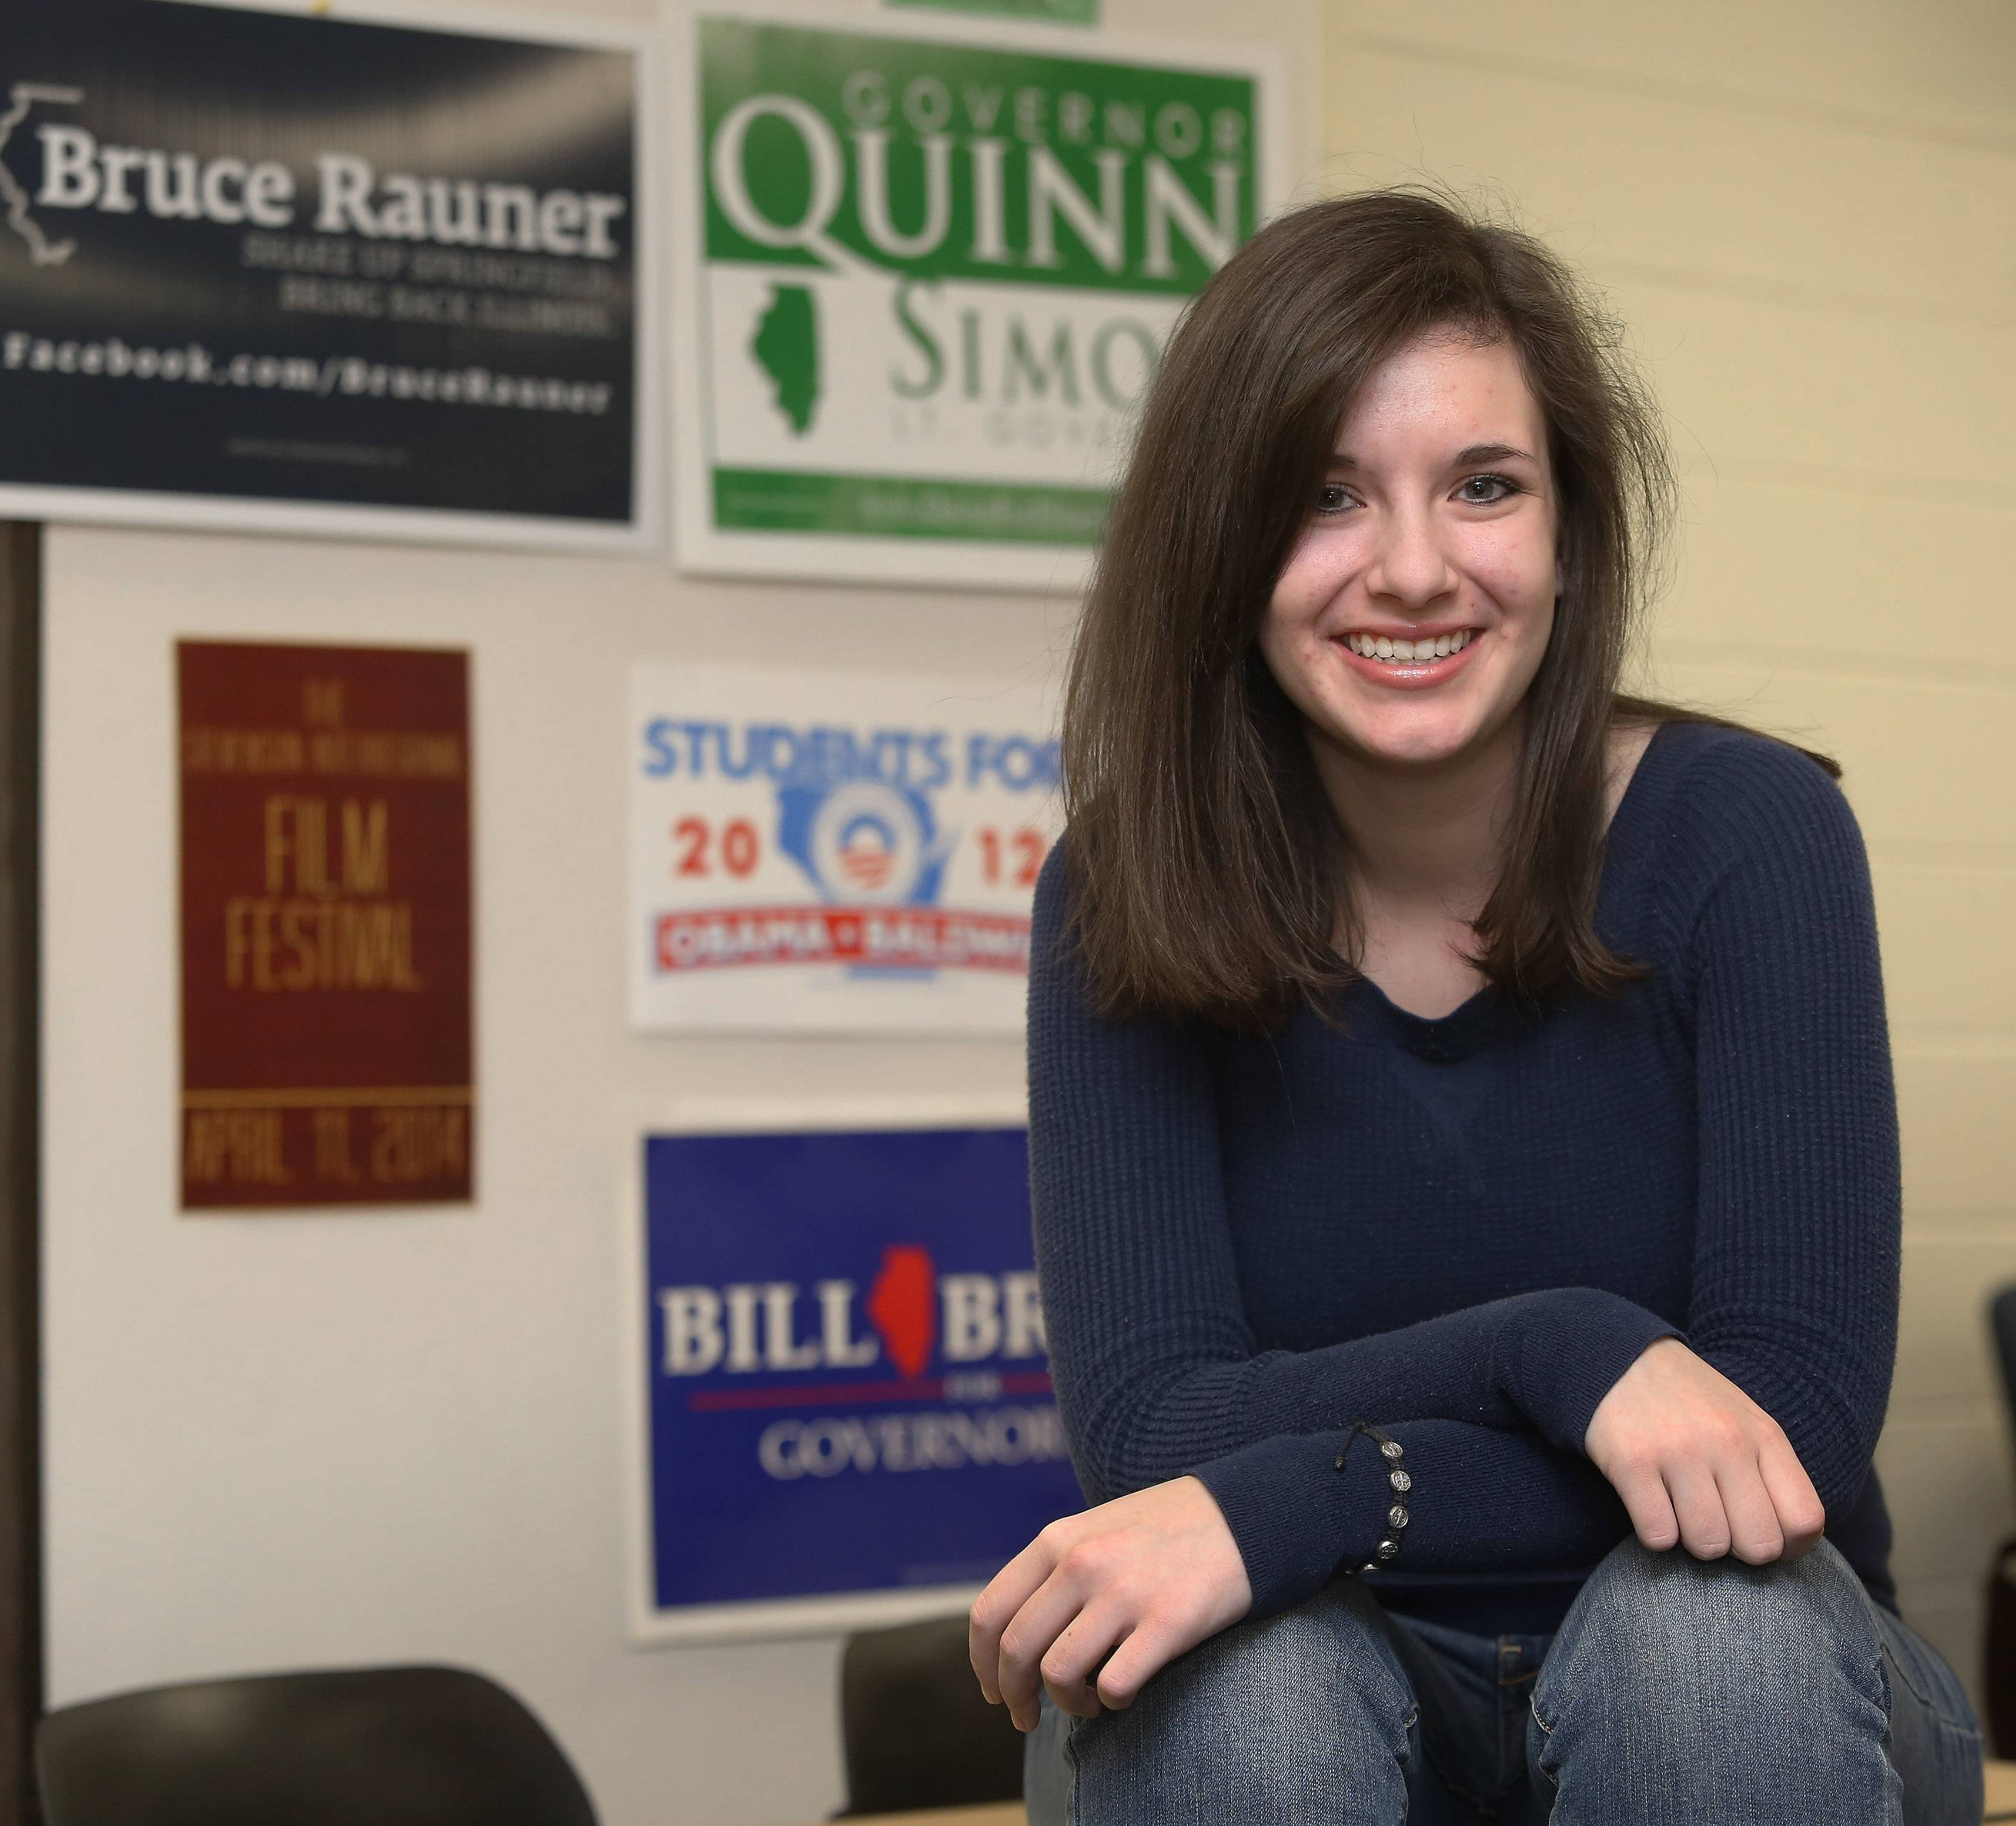 Jennie Matz, 17, sits in her government class at Stevenson High School in Lincolnshire. If they'll be 18 by Nov. 4, 17-year-olds will be able to vote in the primary election. It's the first time people under 18 have been eligible to vote in Illinois.